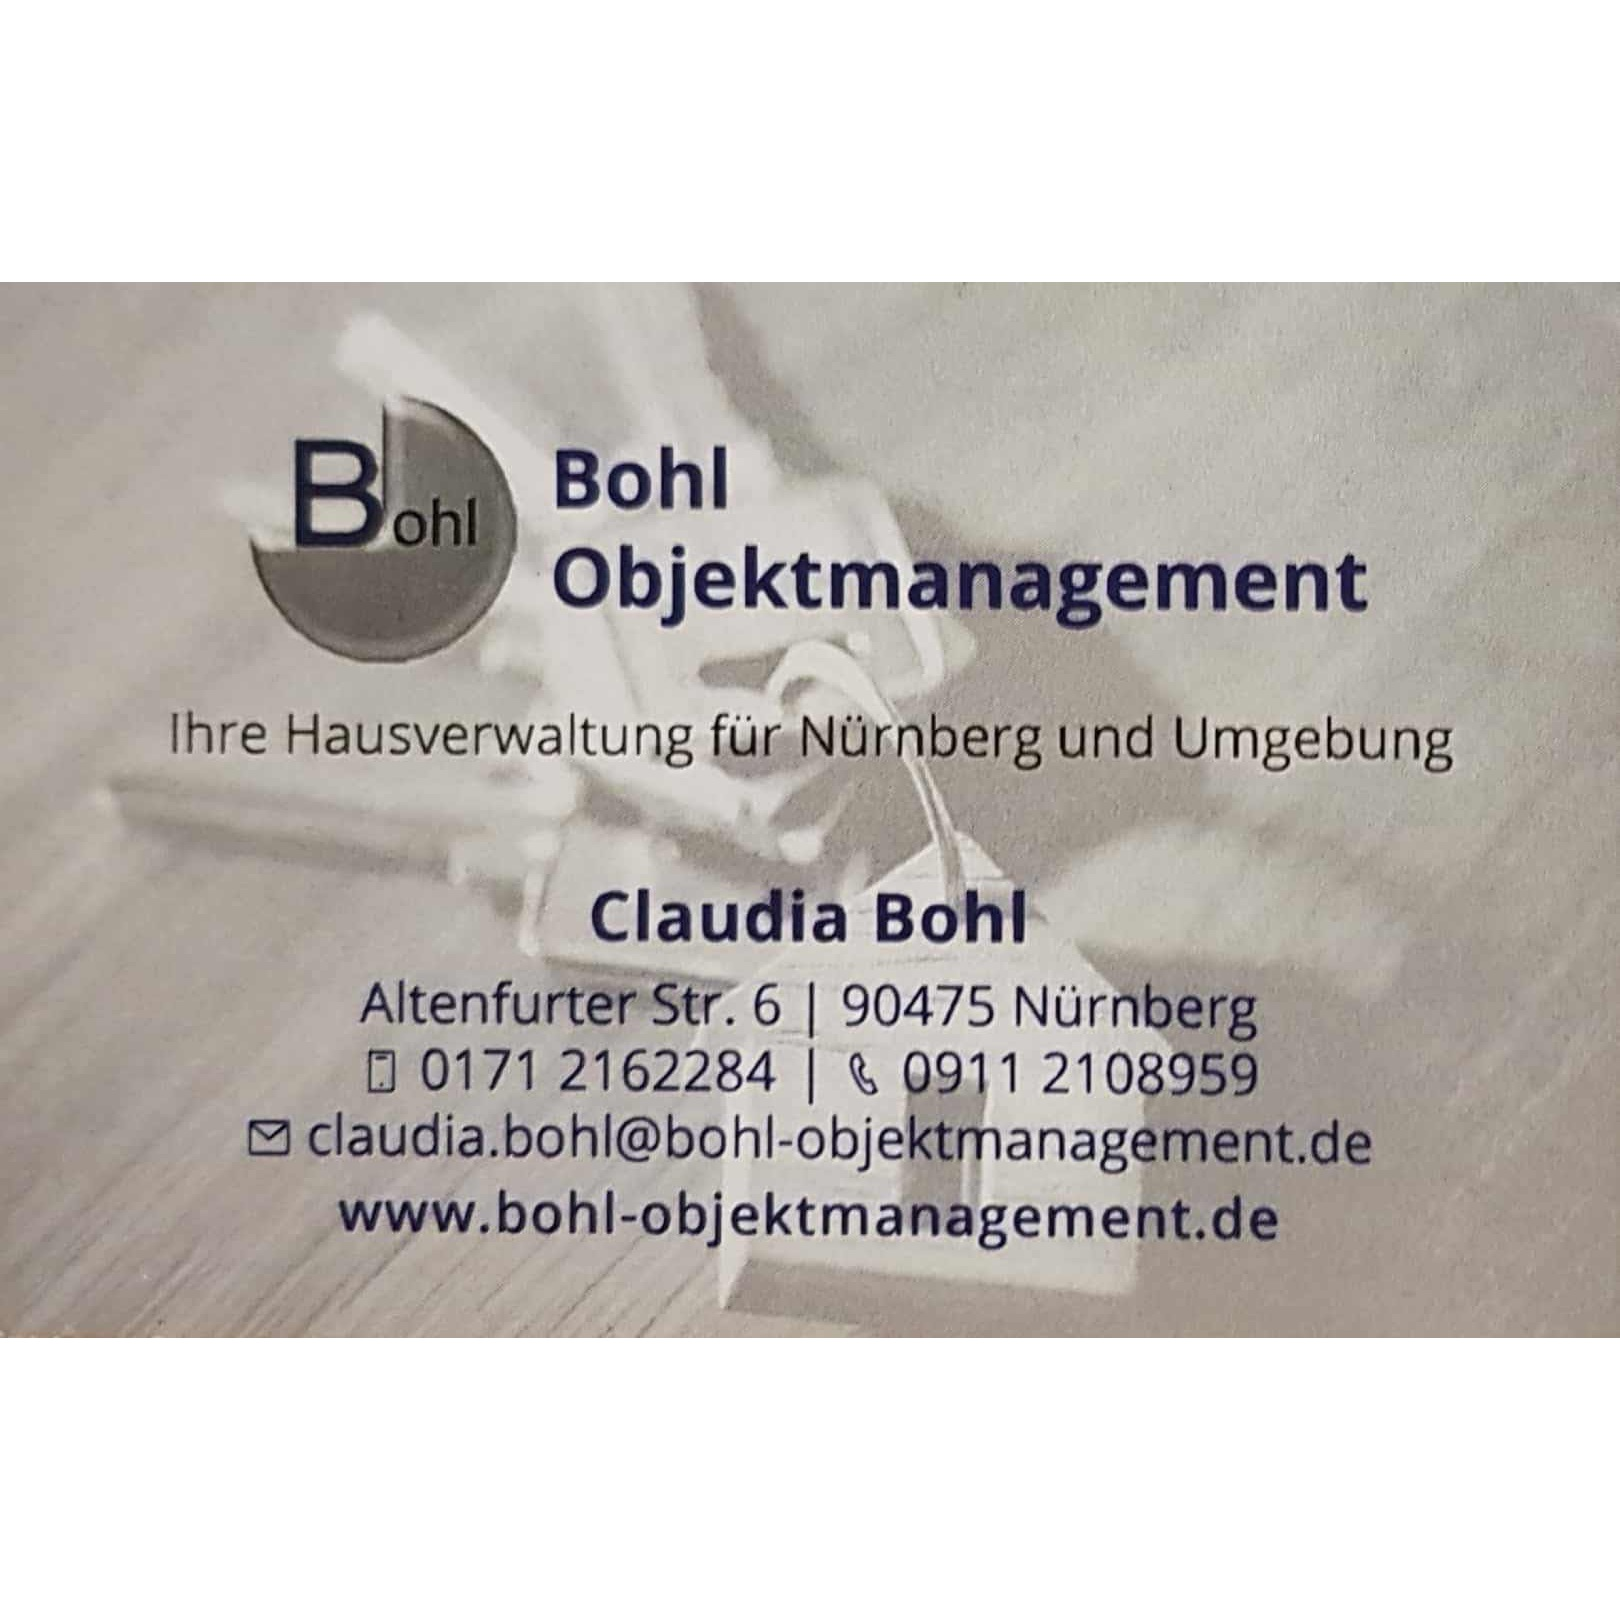 Claudia Bohl Objektmanagement